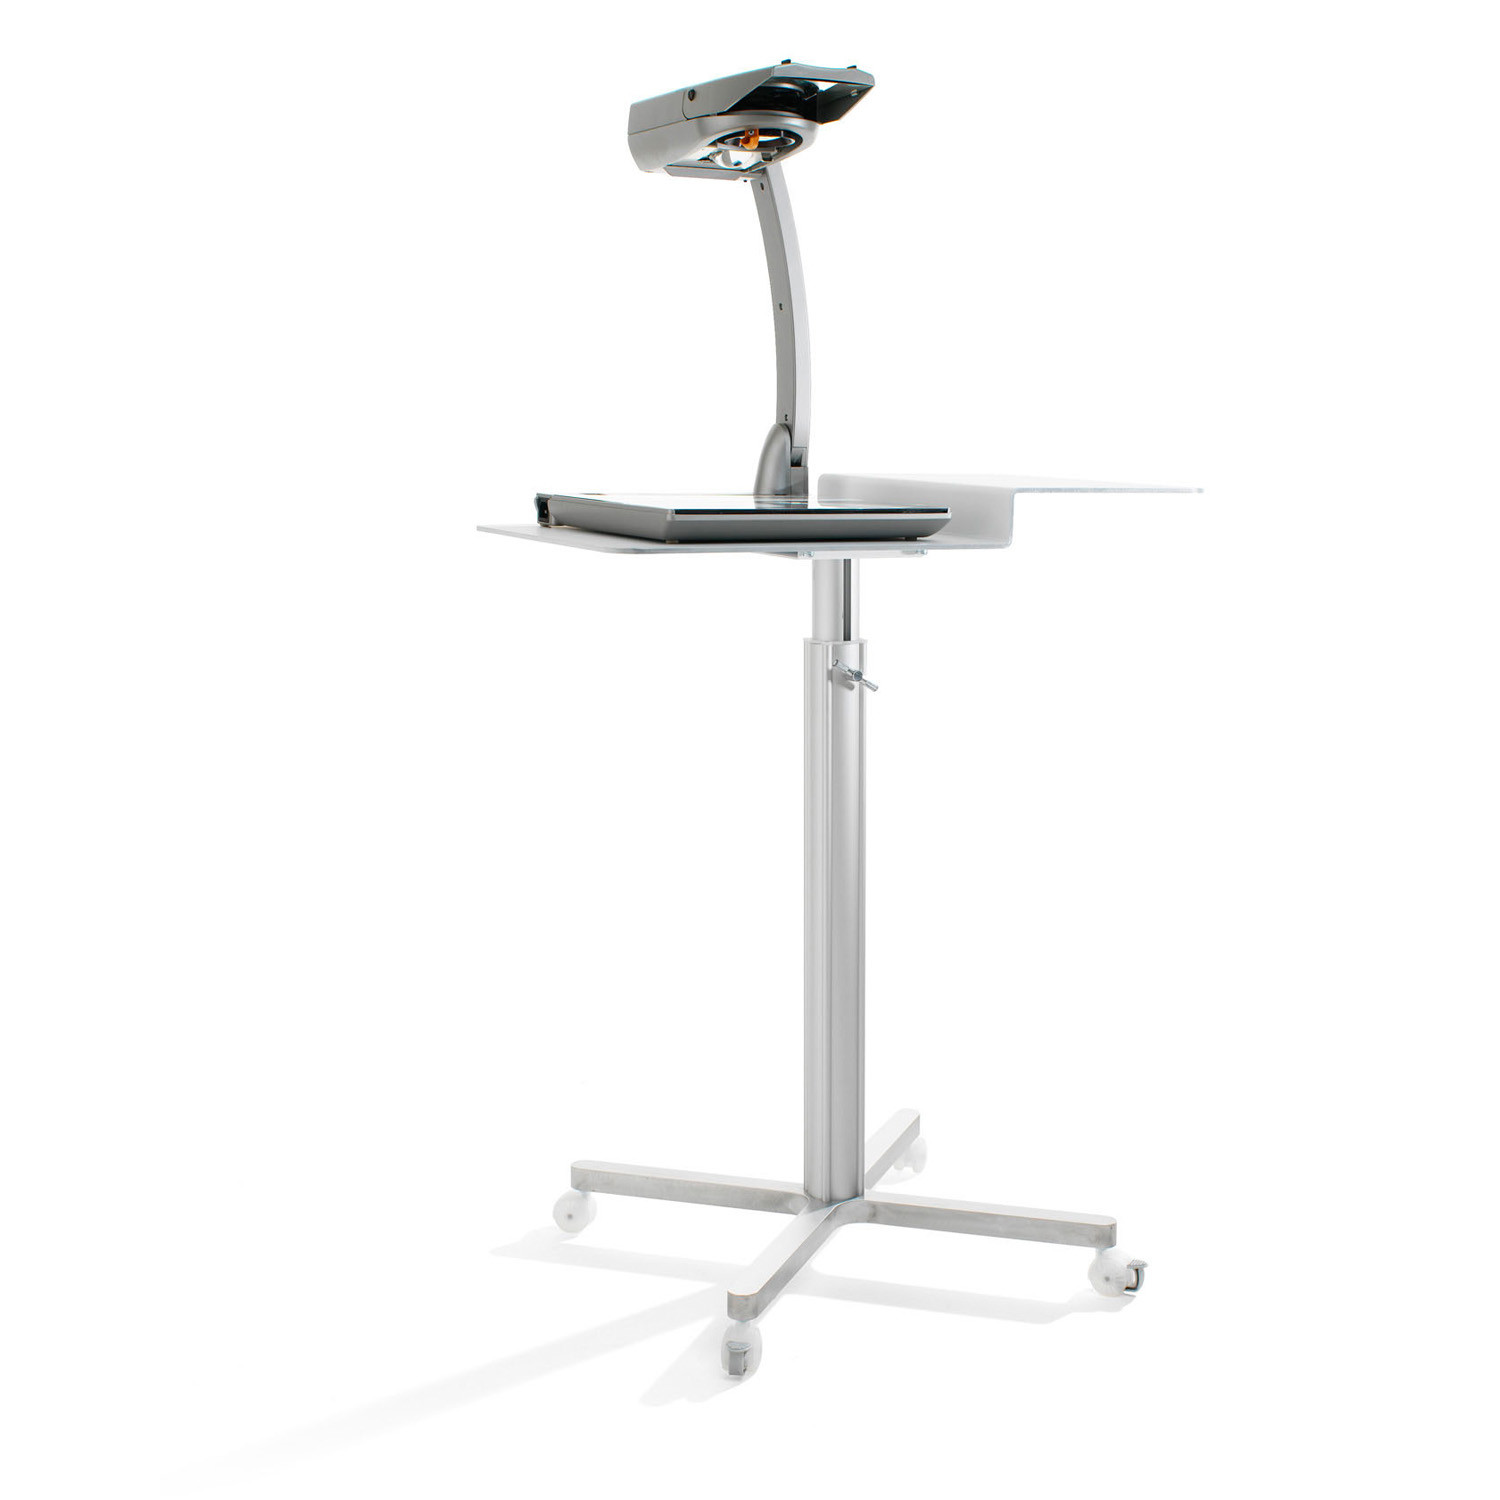 Abstracta Mixx Lectern Projector Stand